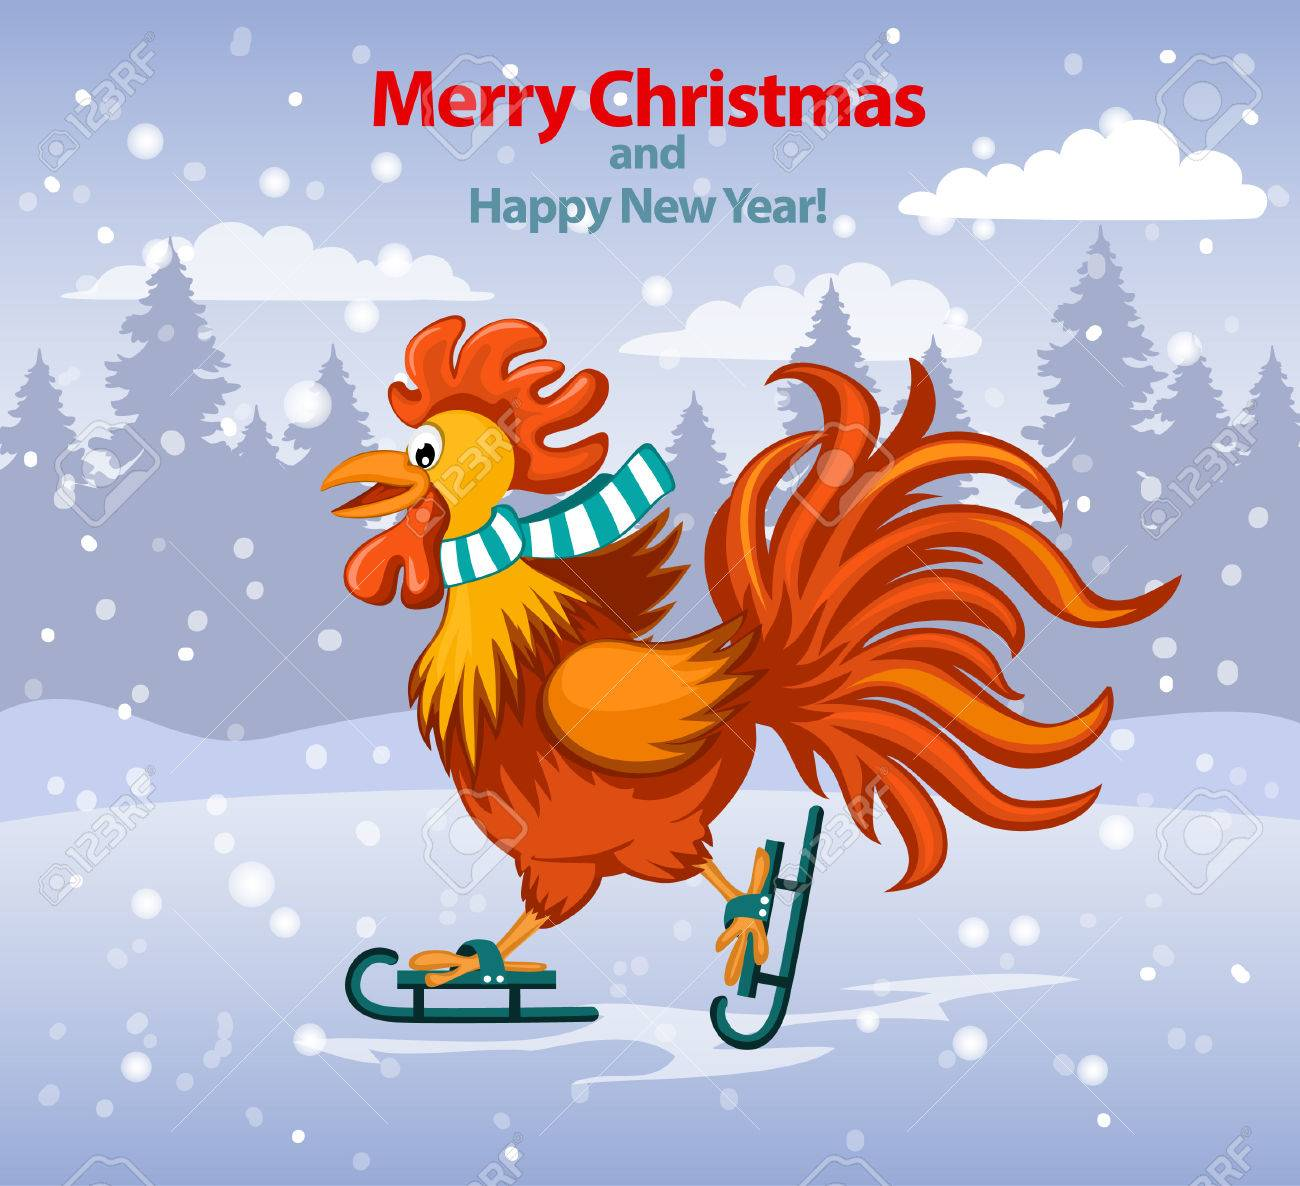 merry christmas and happy new year greeting card with cute funny rooster ice skating under the